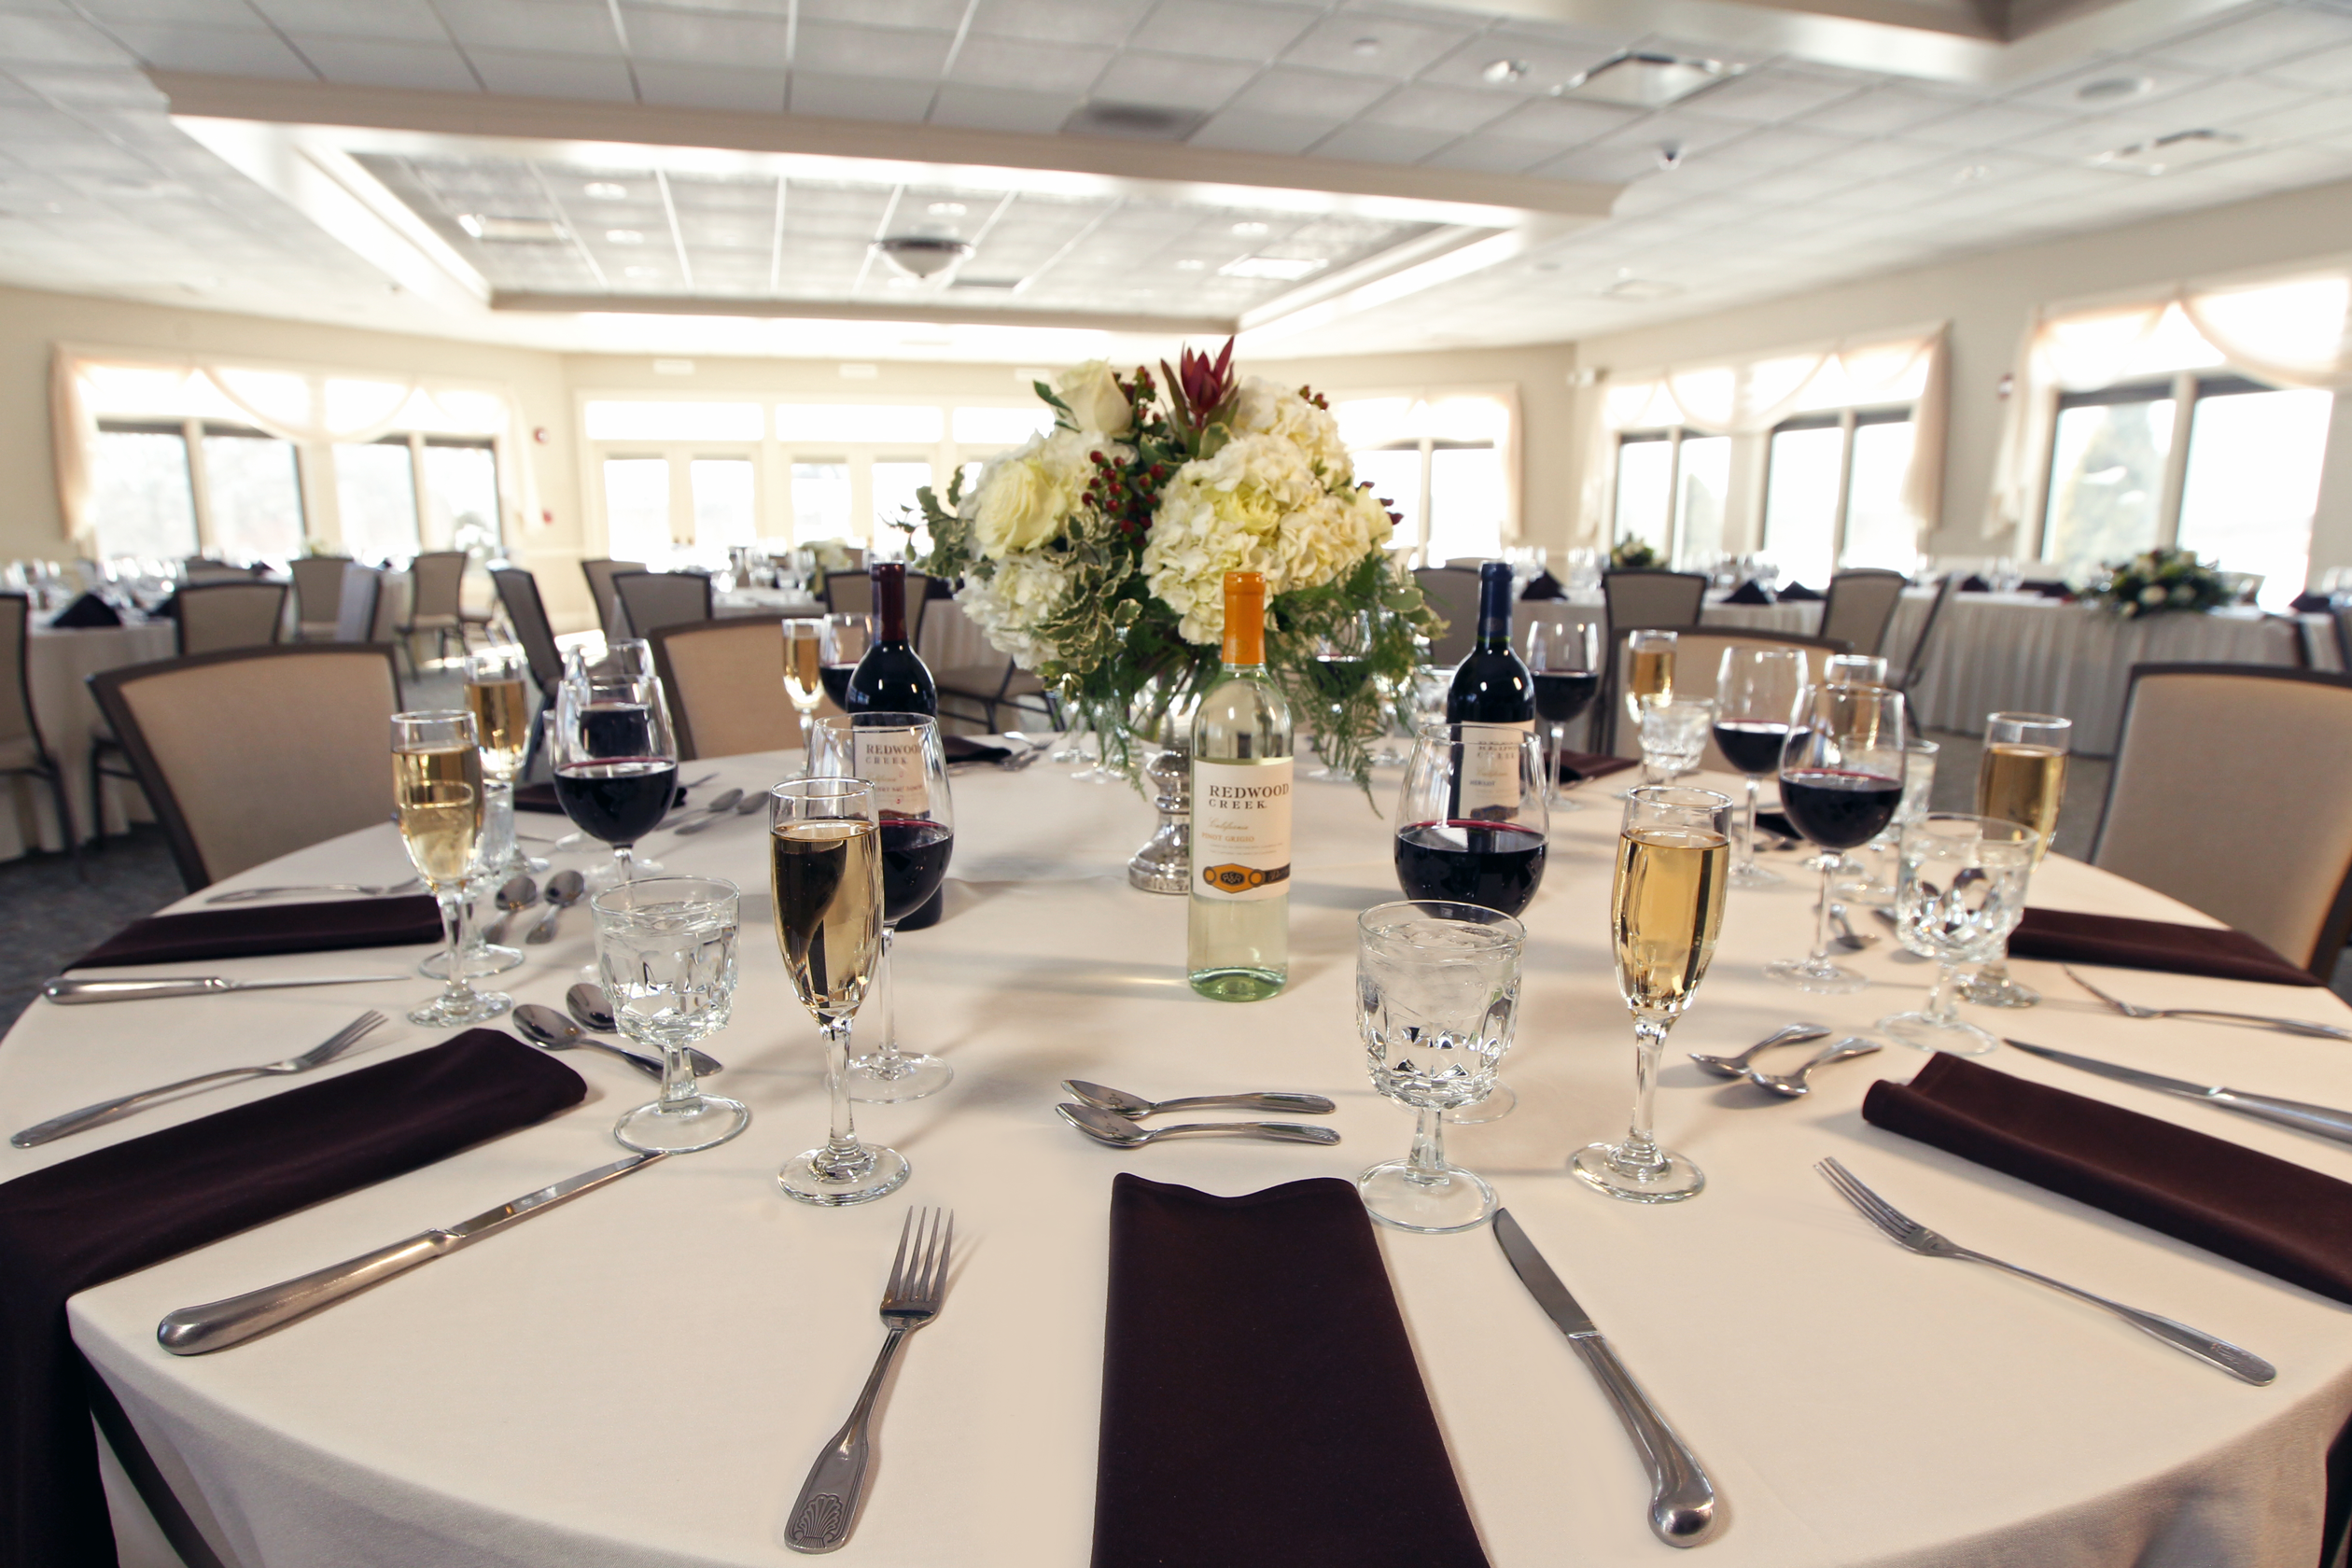 Quincy, MA Weddings & Events | The Tirrell Room